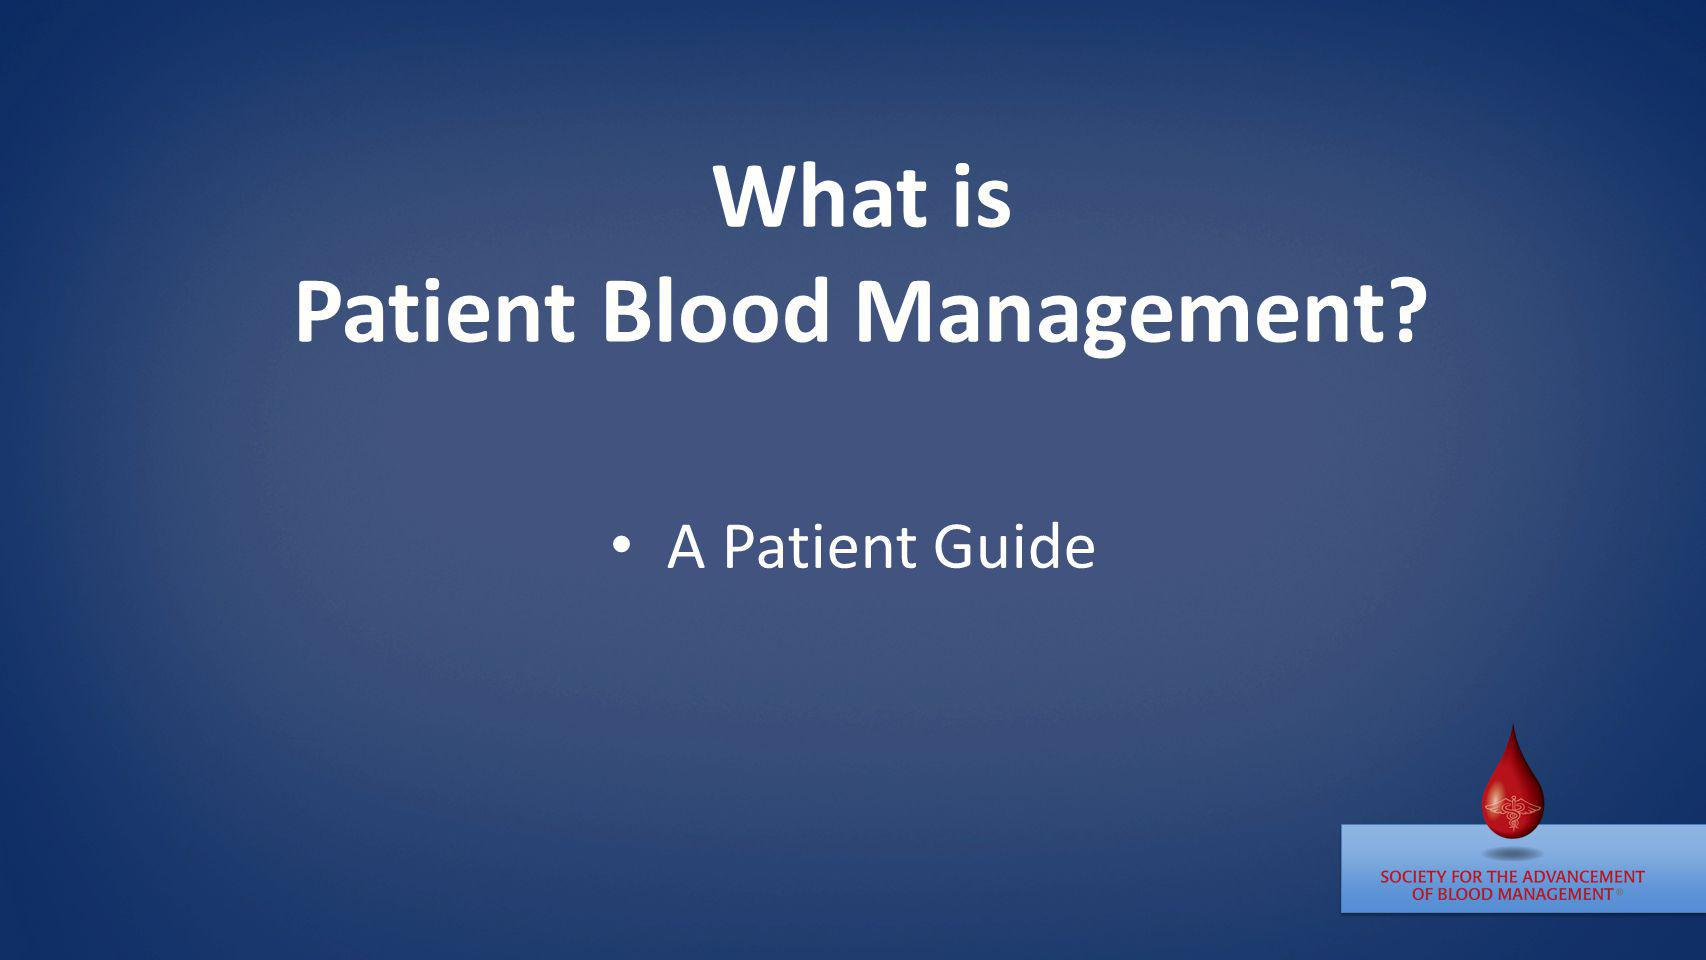 What is Patient Blood Management? A Patient Guide